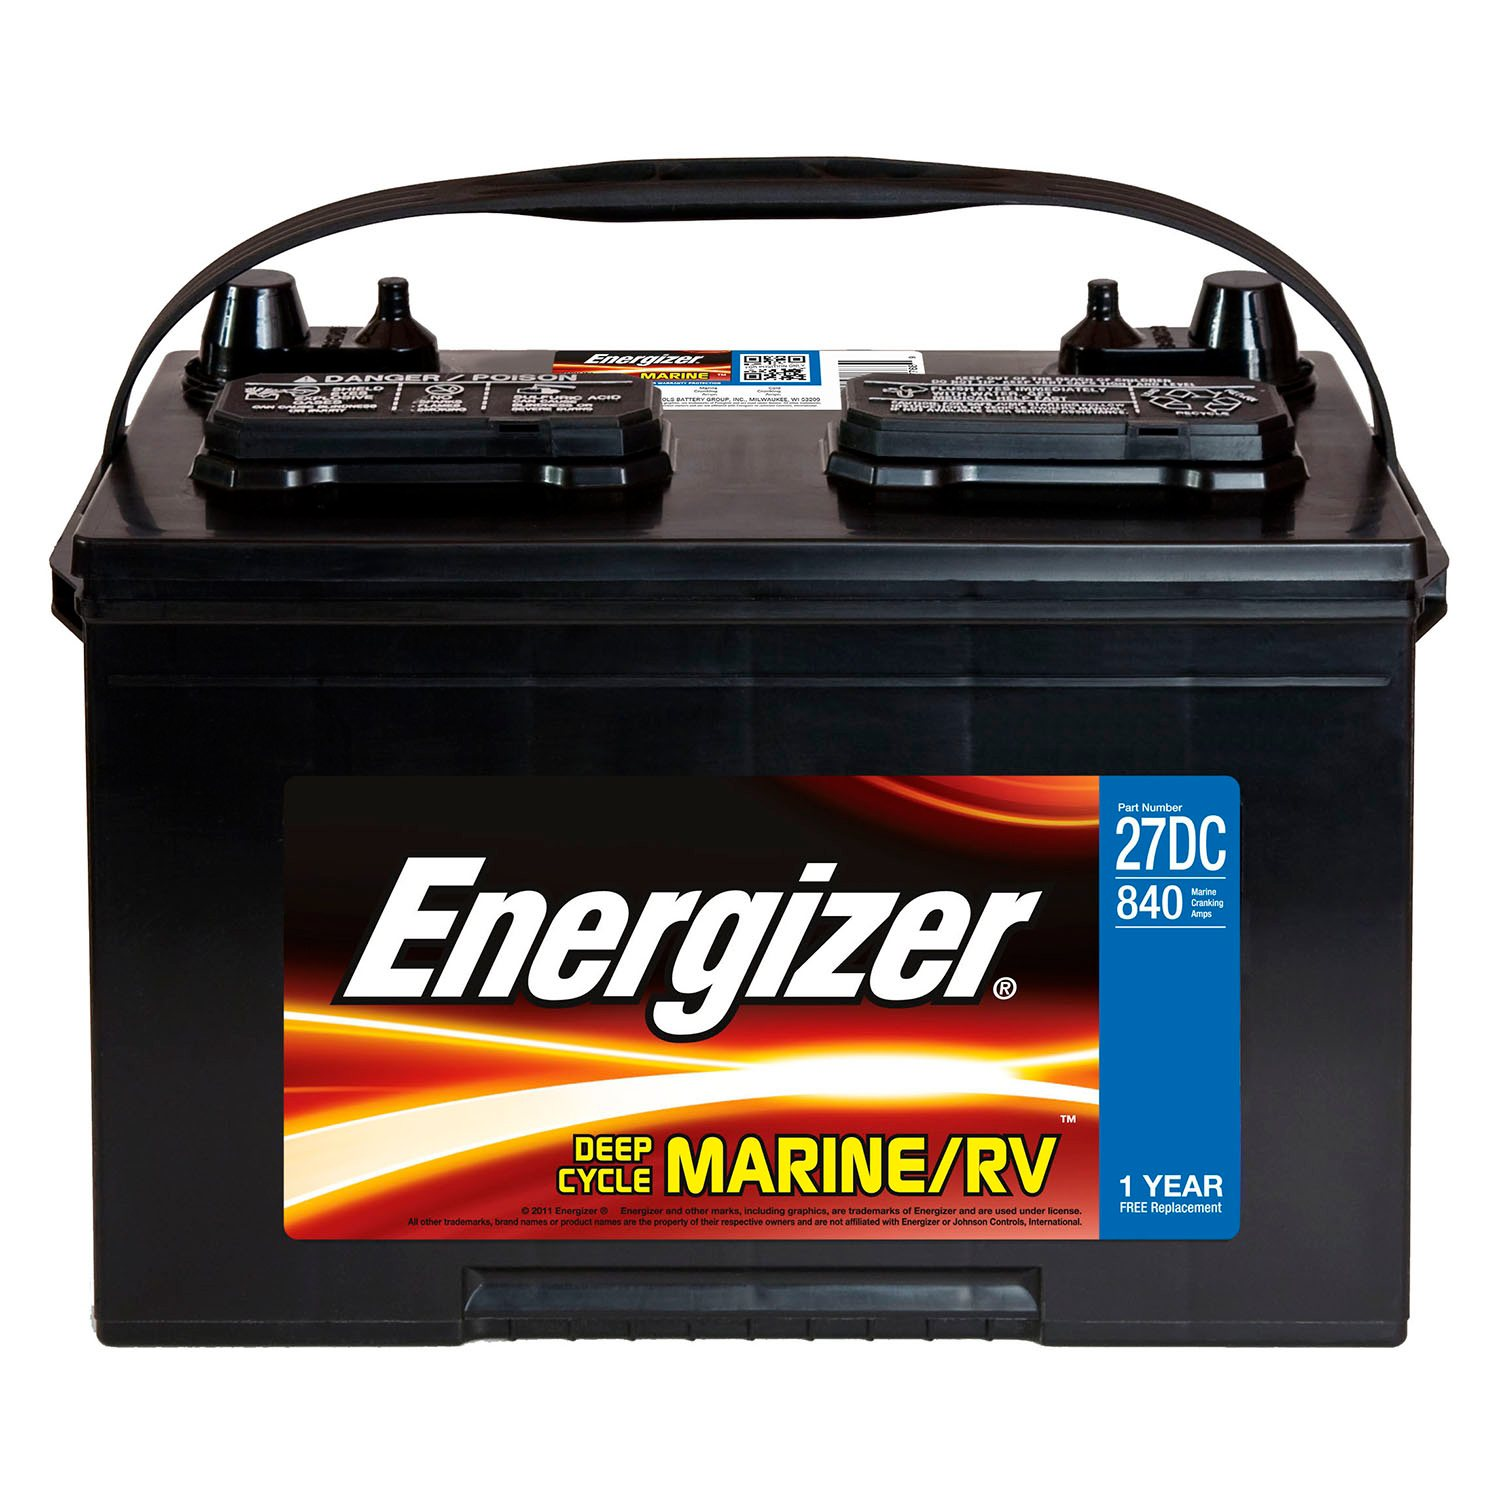 Image result for marine battery image